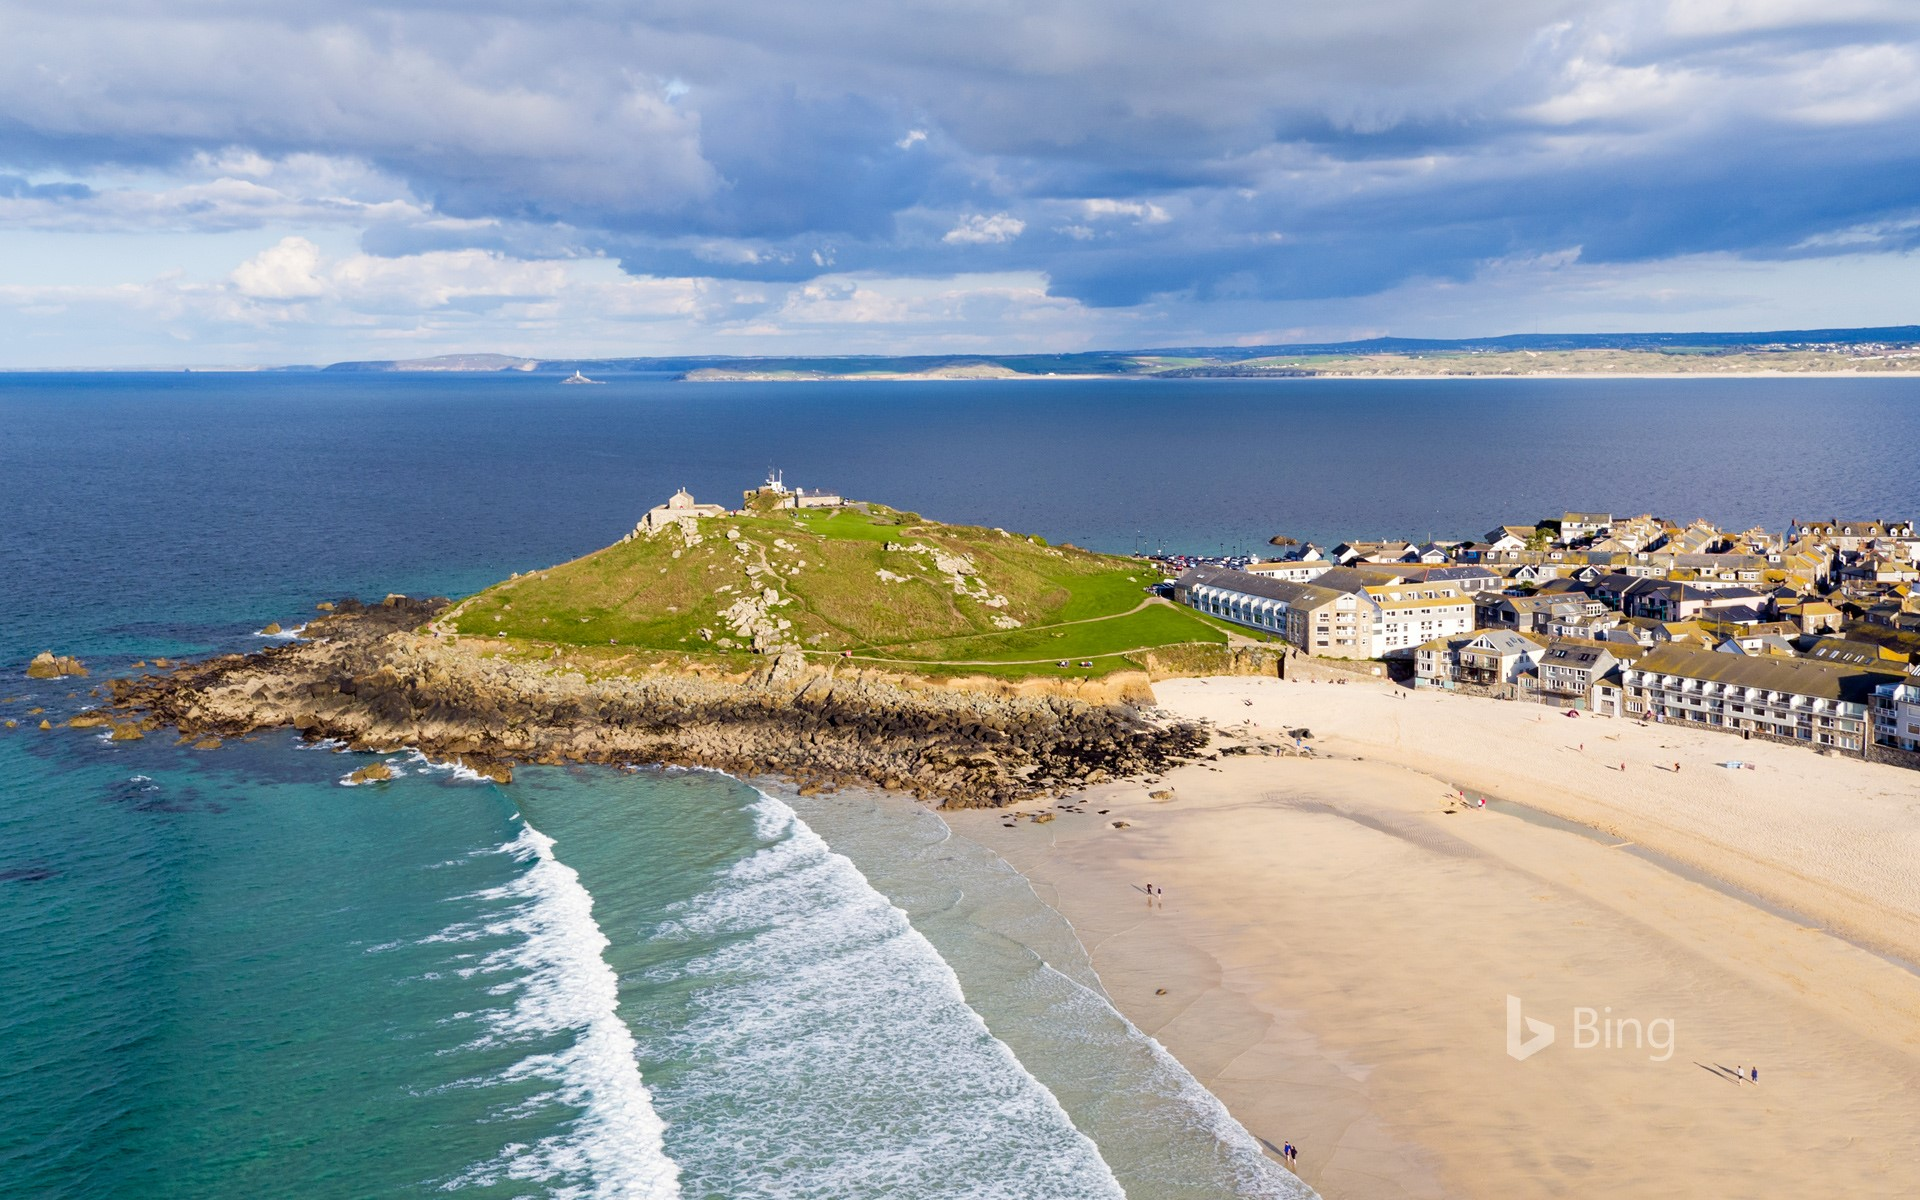 Porthmeor beach in St Ives, Cornwall, England